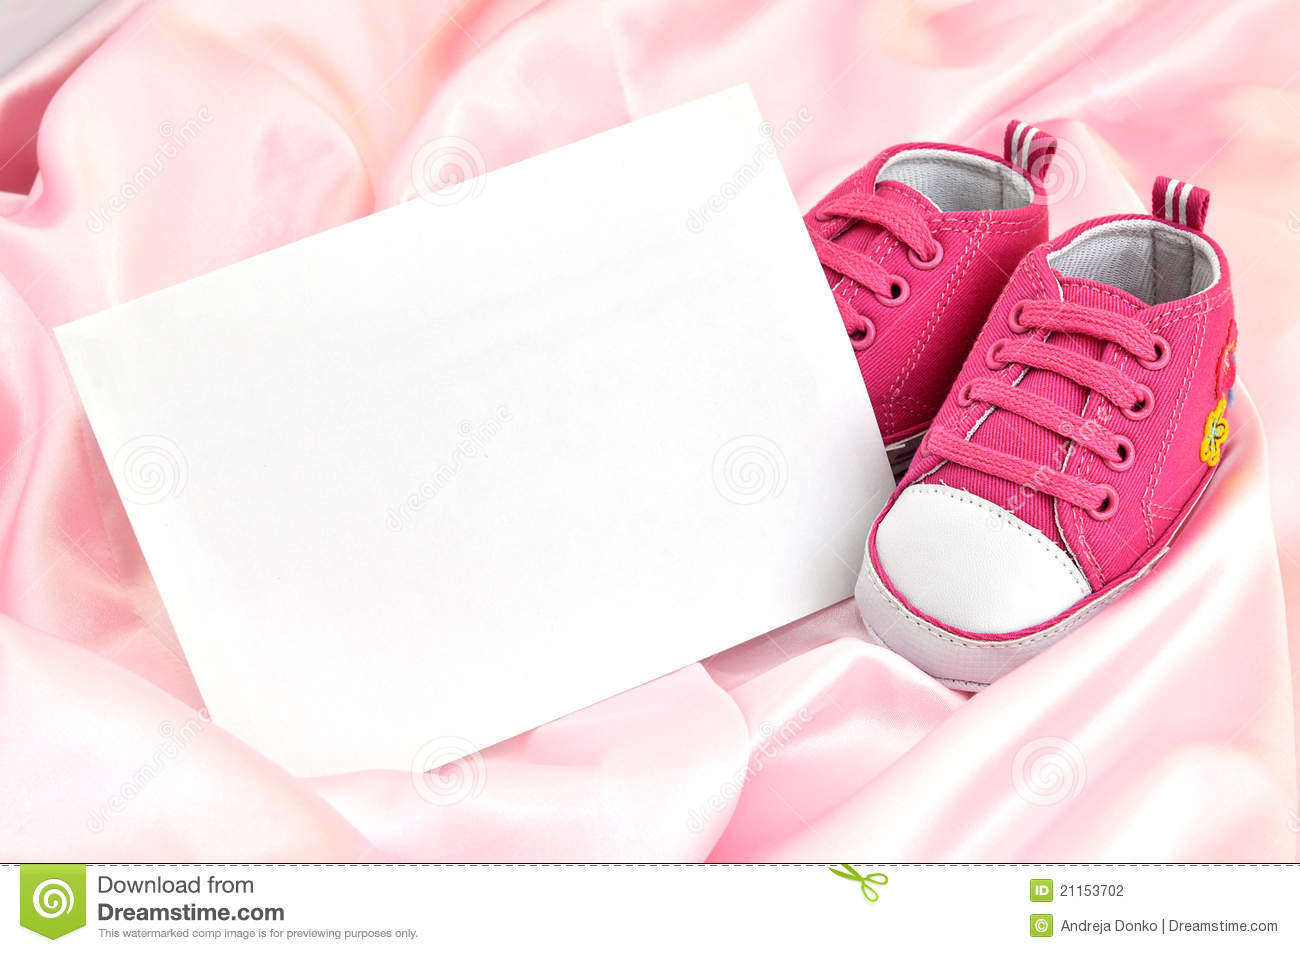 Baby shower wallpaper images wallpapersafari - Baby background ...